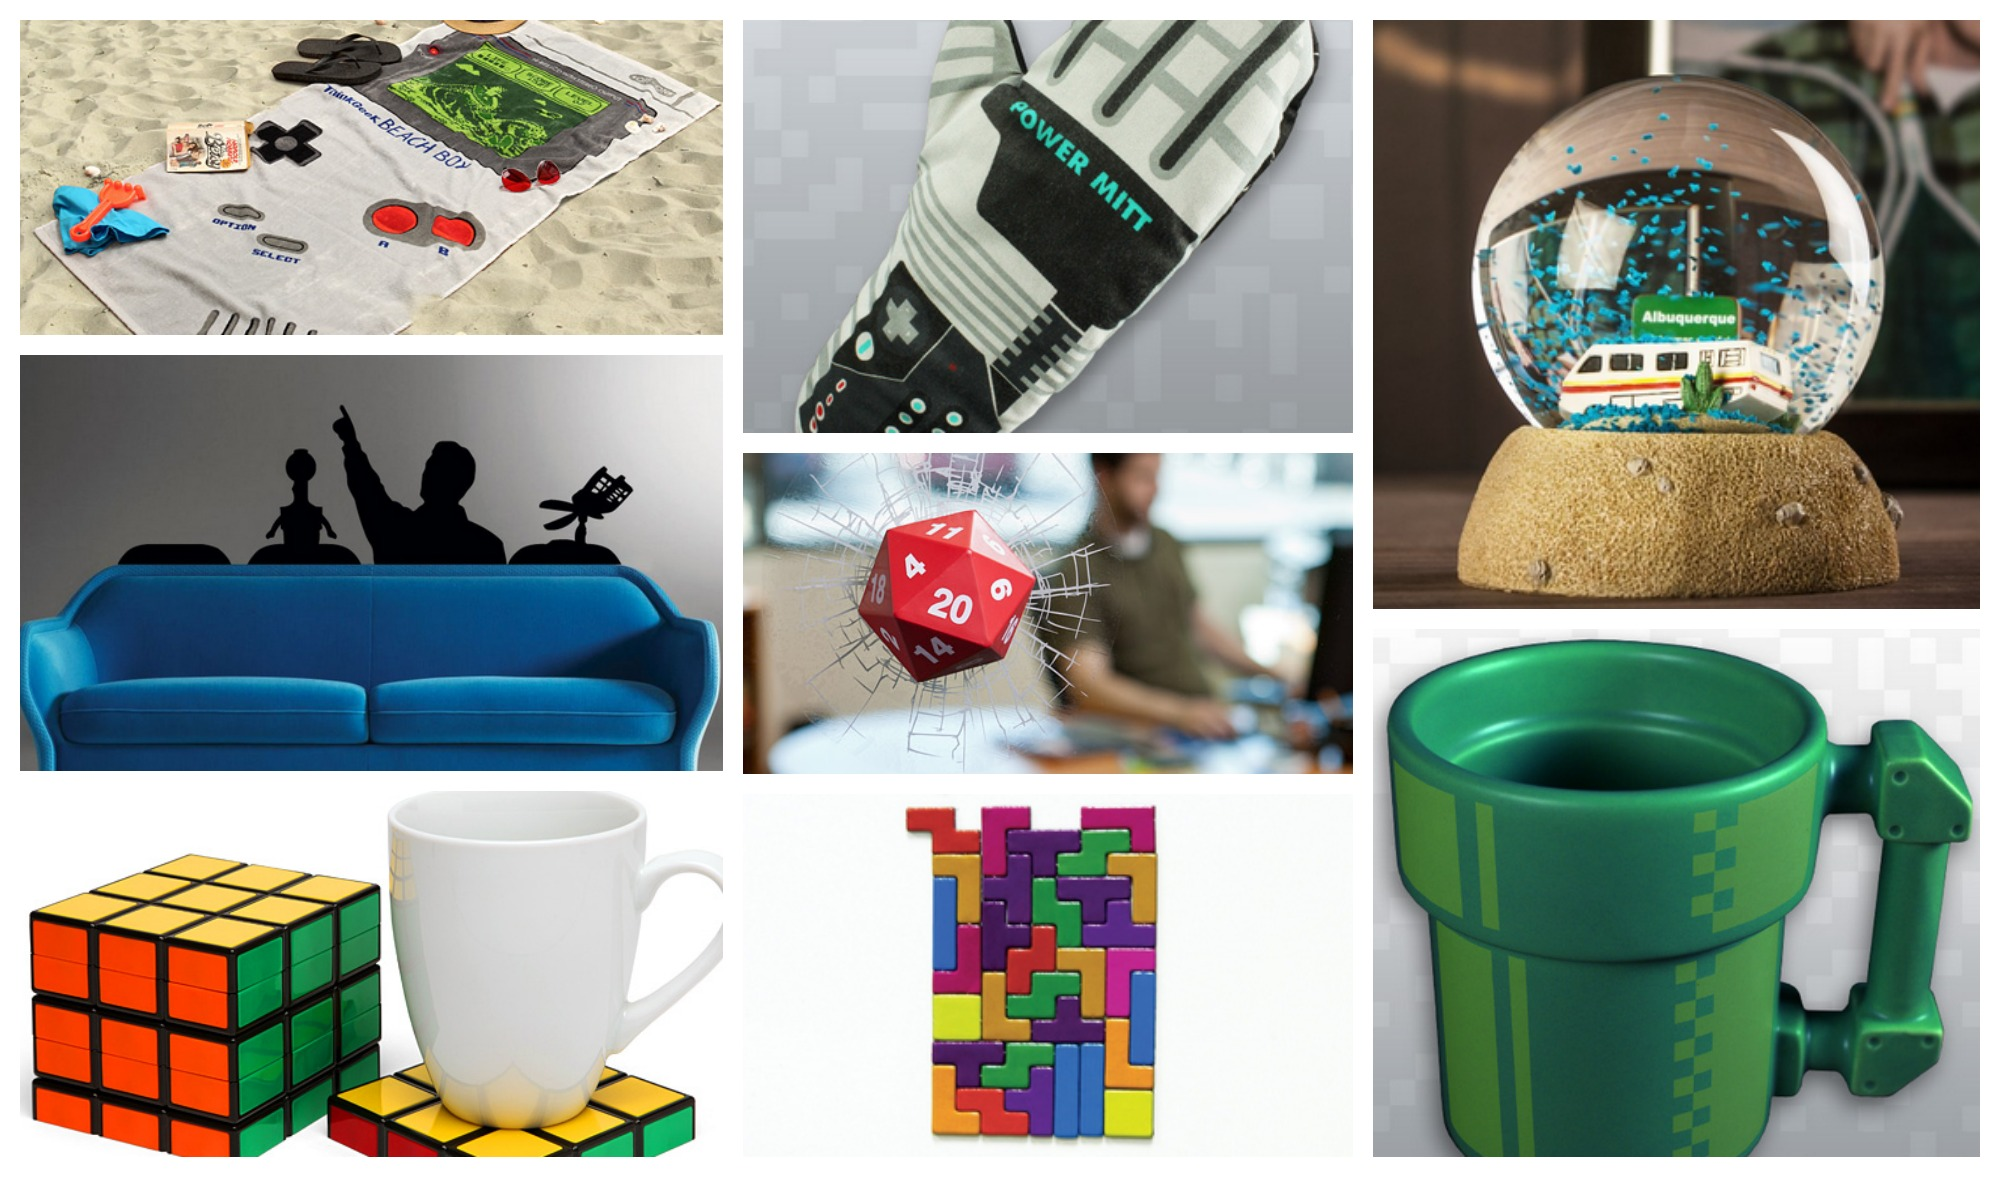 Geek Gift Guide / Geeky Holiday gift ideas